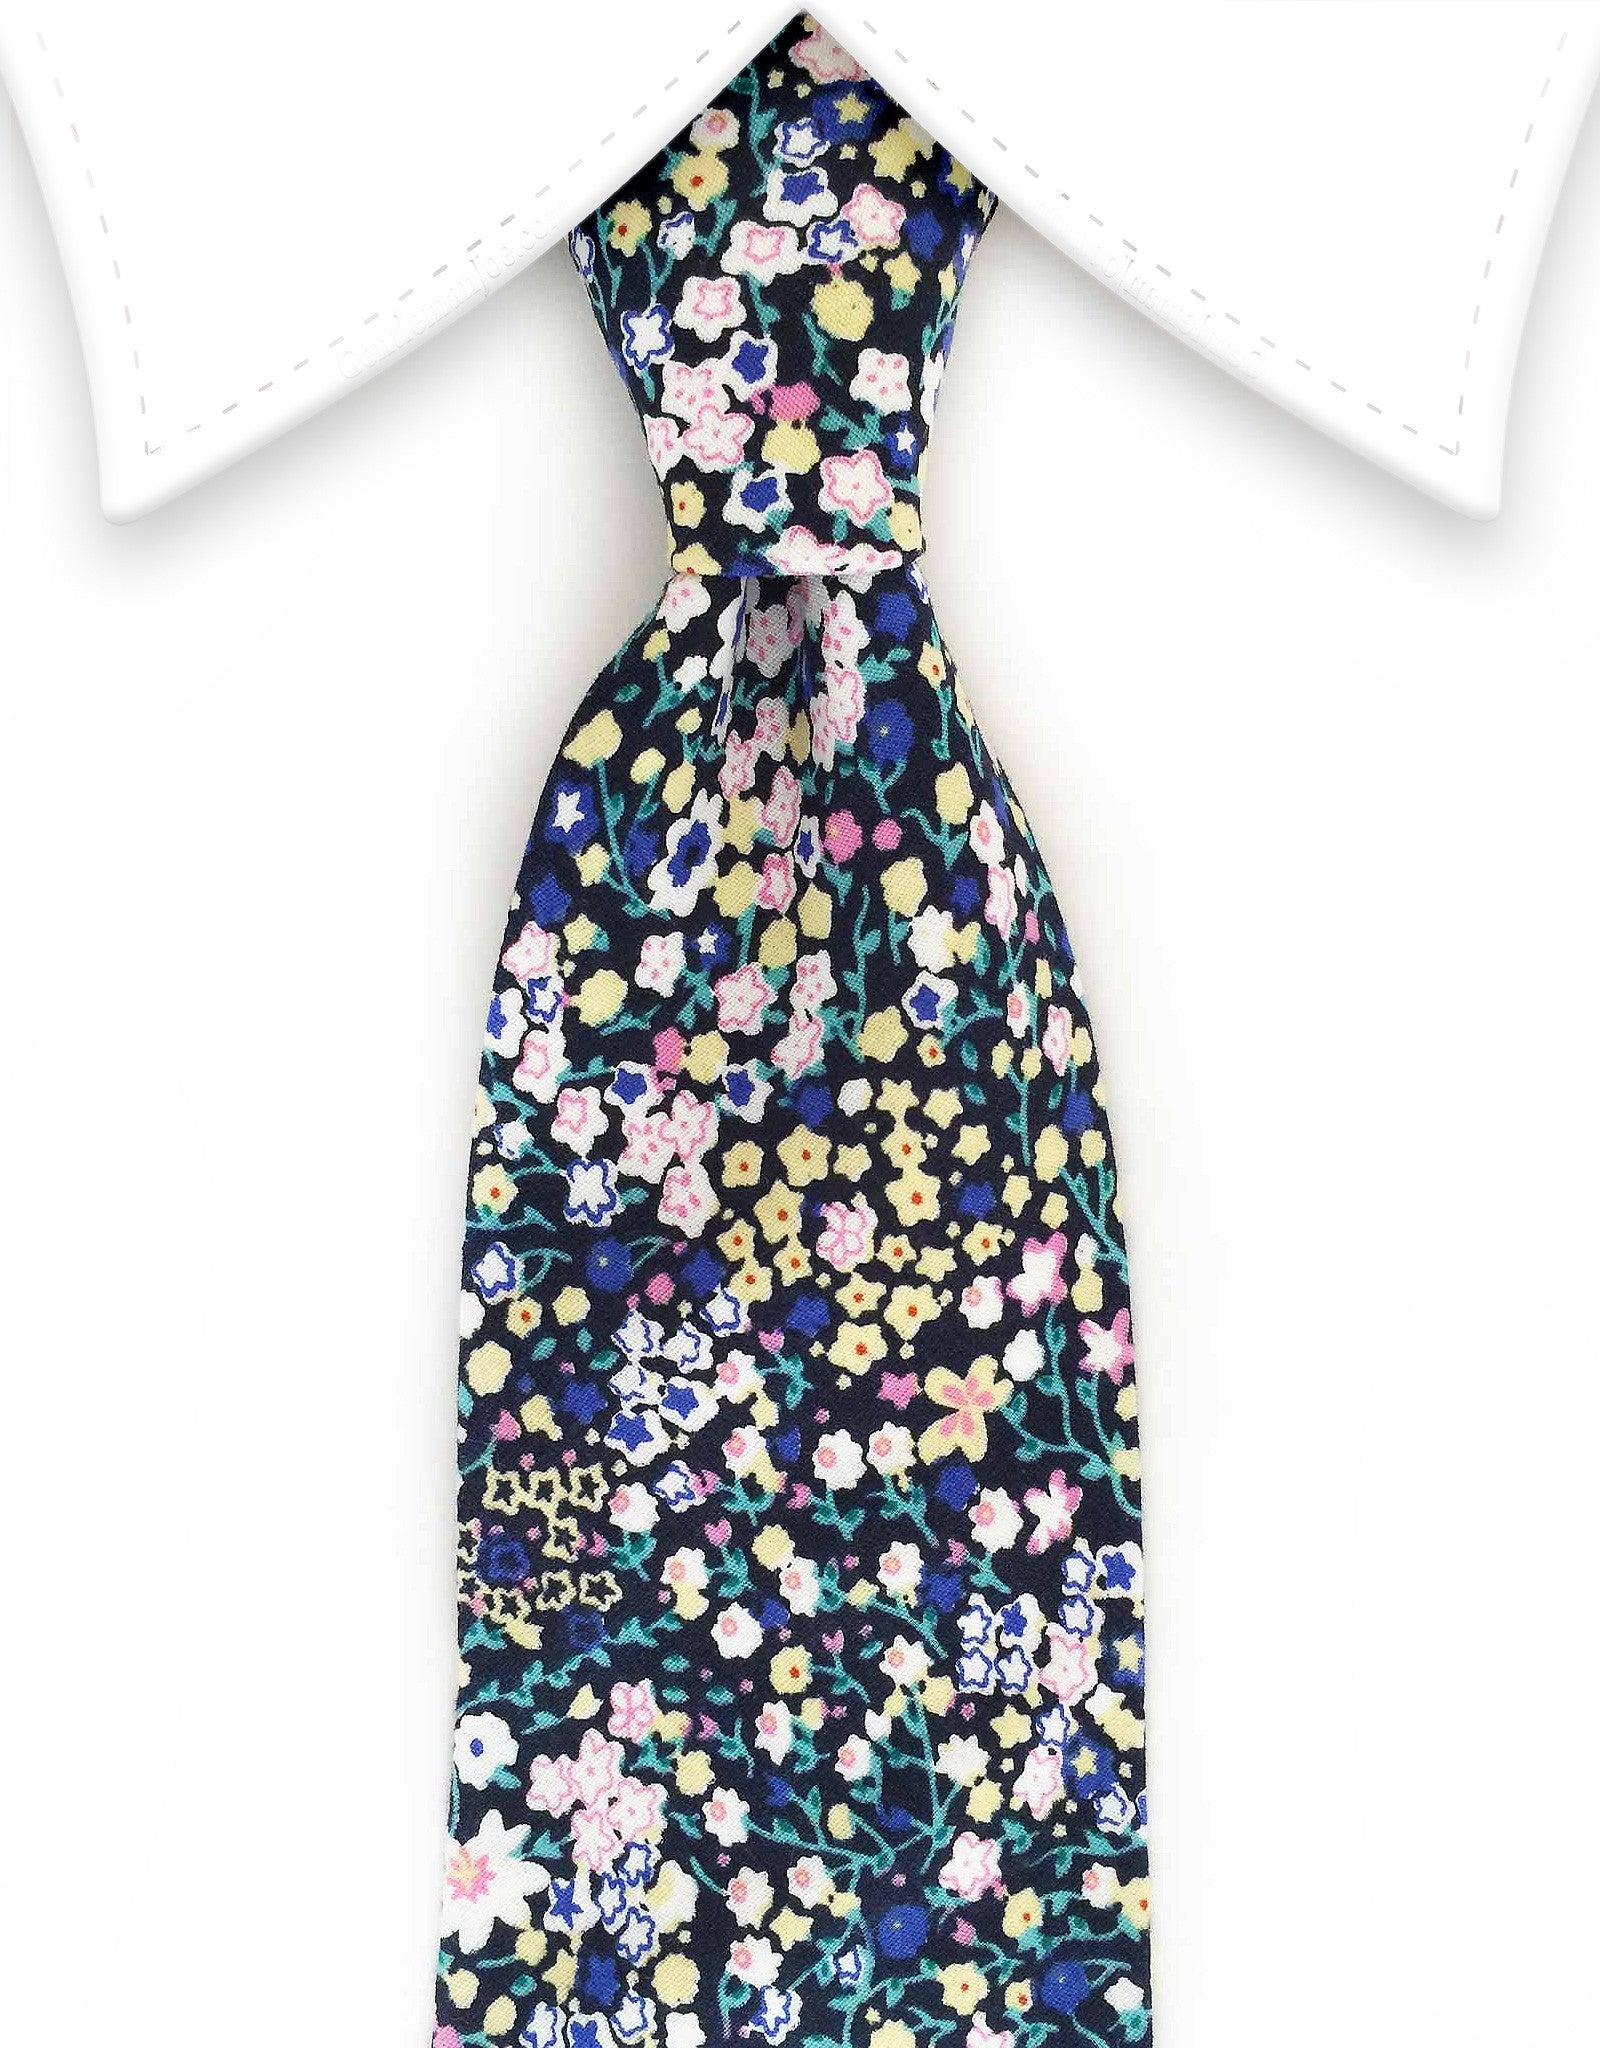 Mini yellow, white, pink, blue floral tie